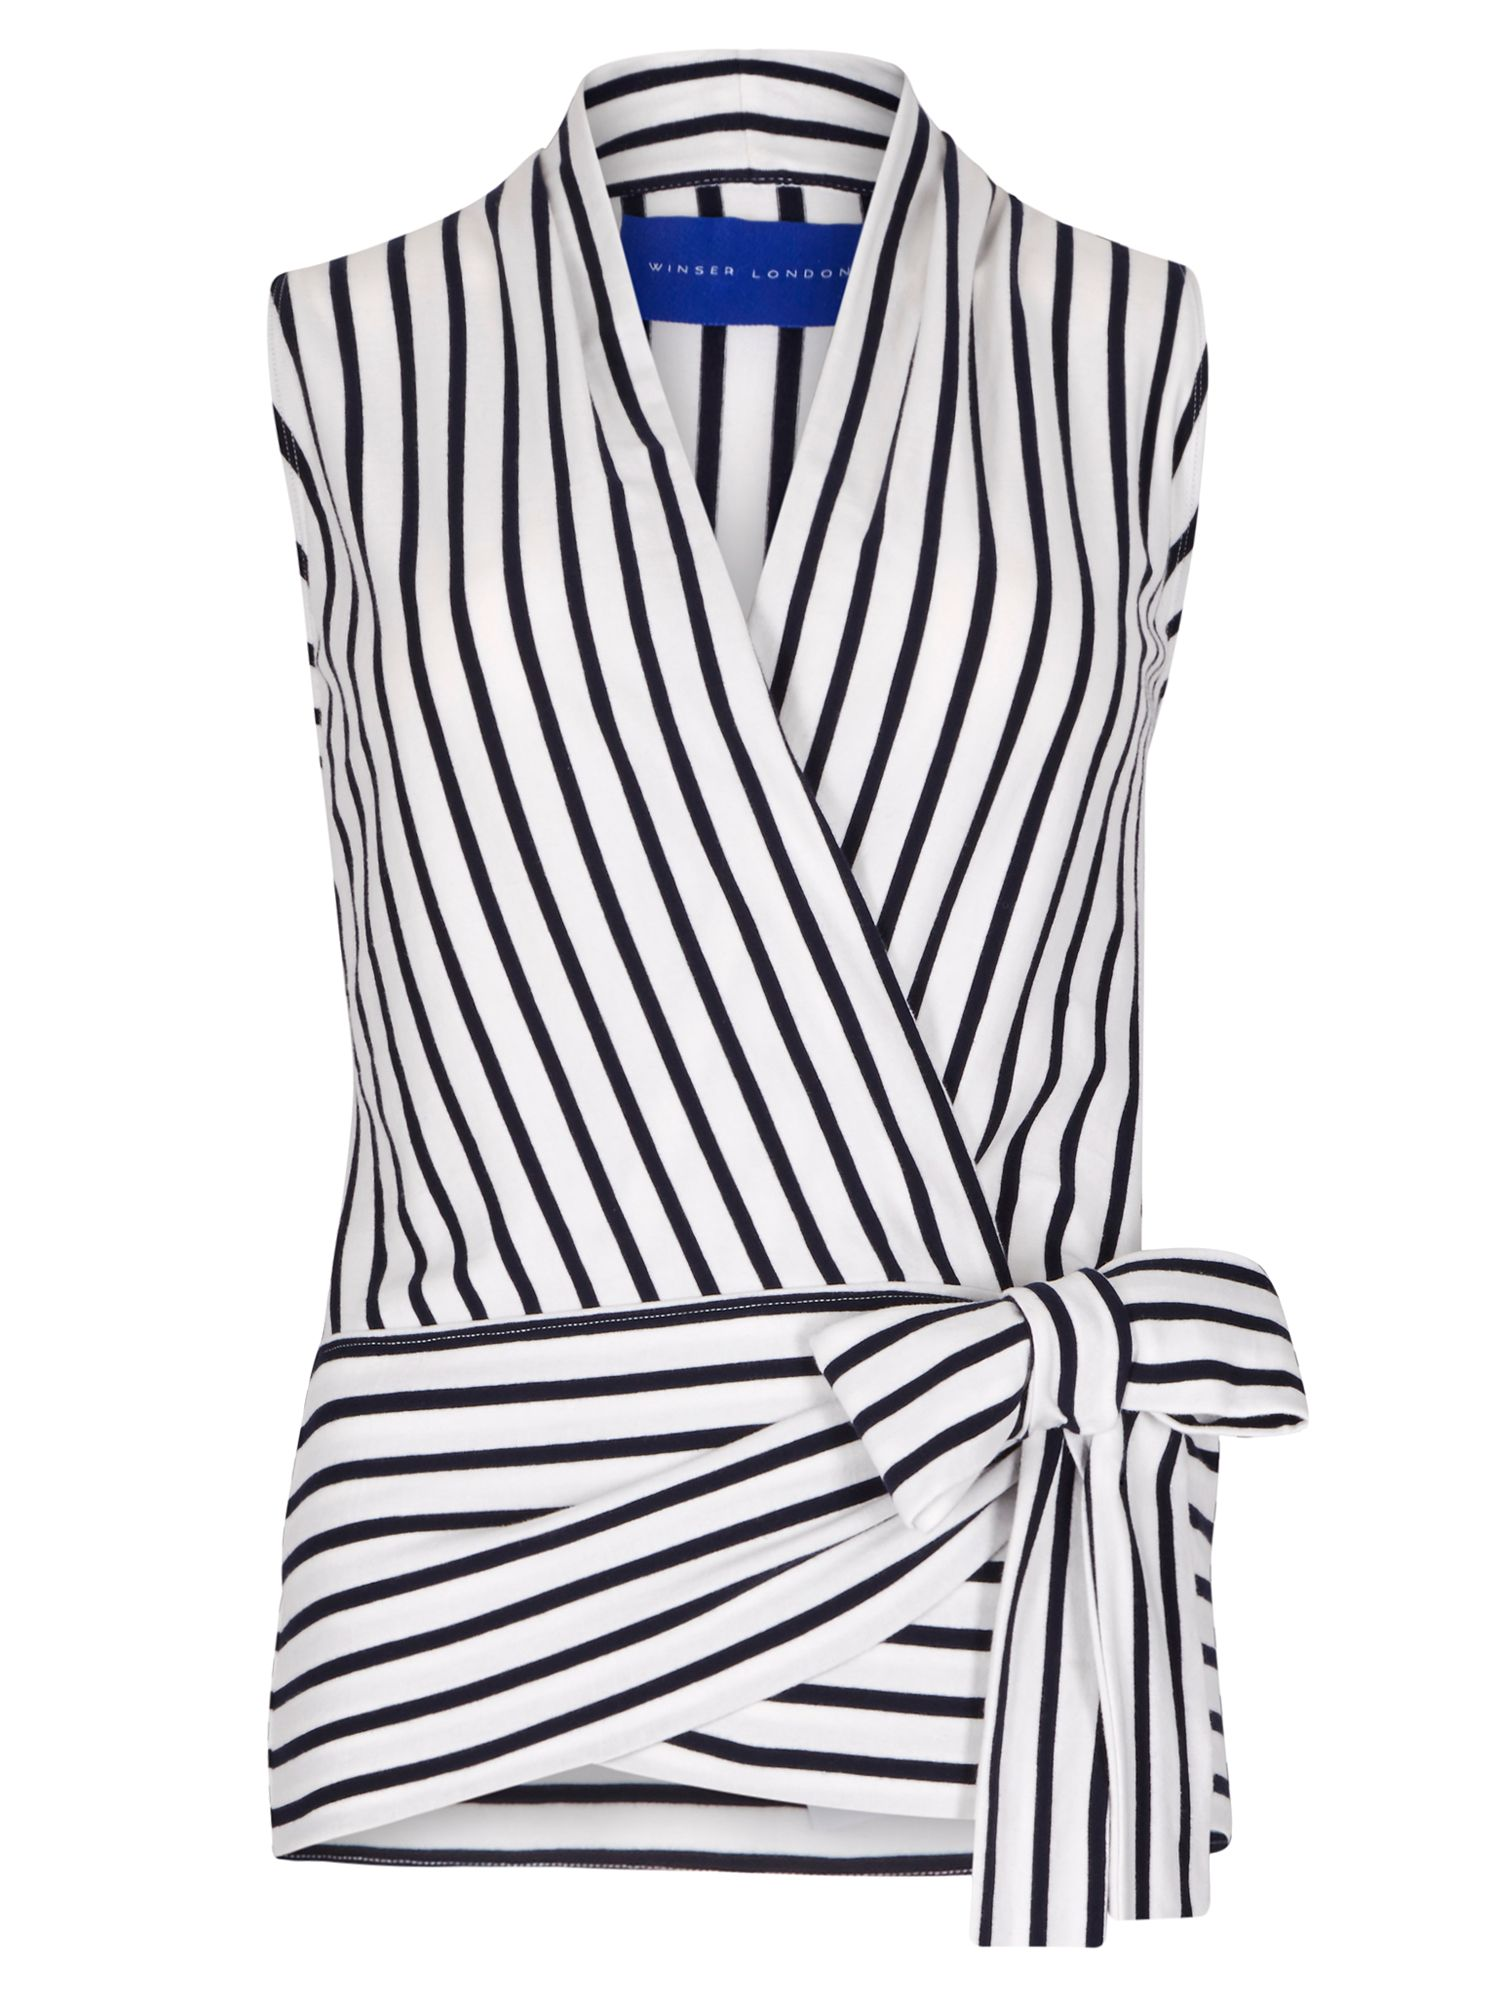 Winser London Cotton Jersey Striped Wrap Top, Blue